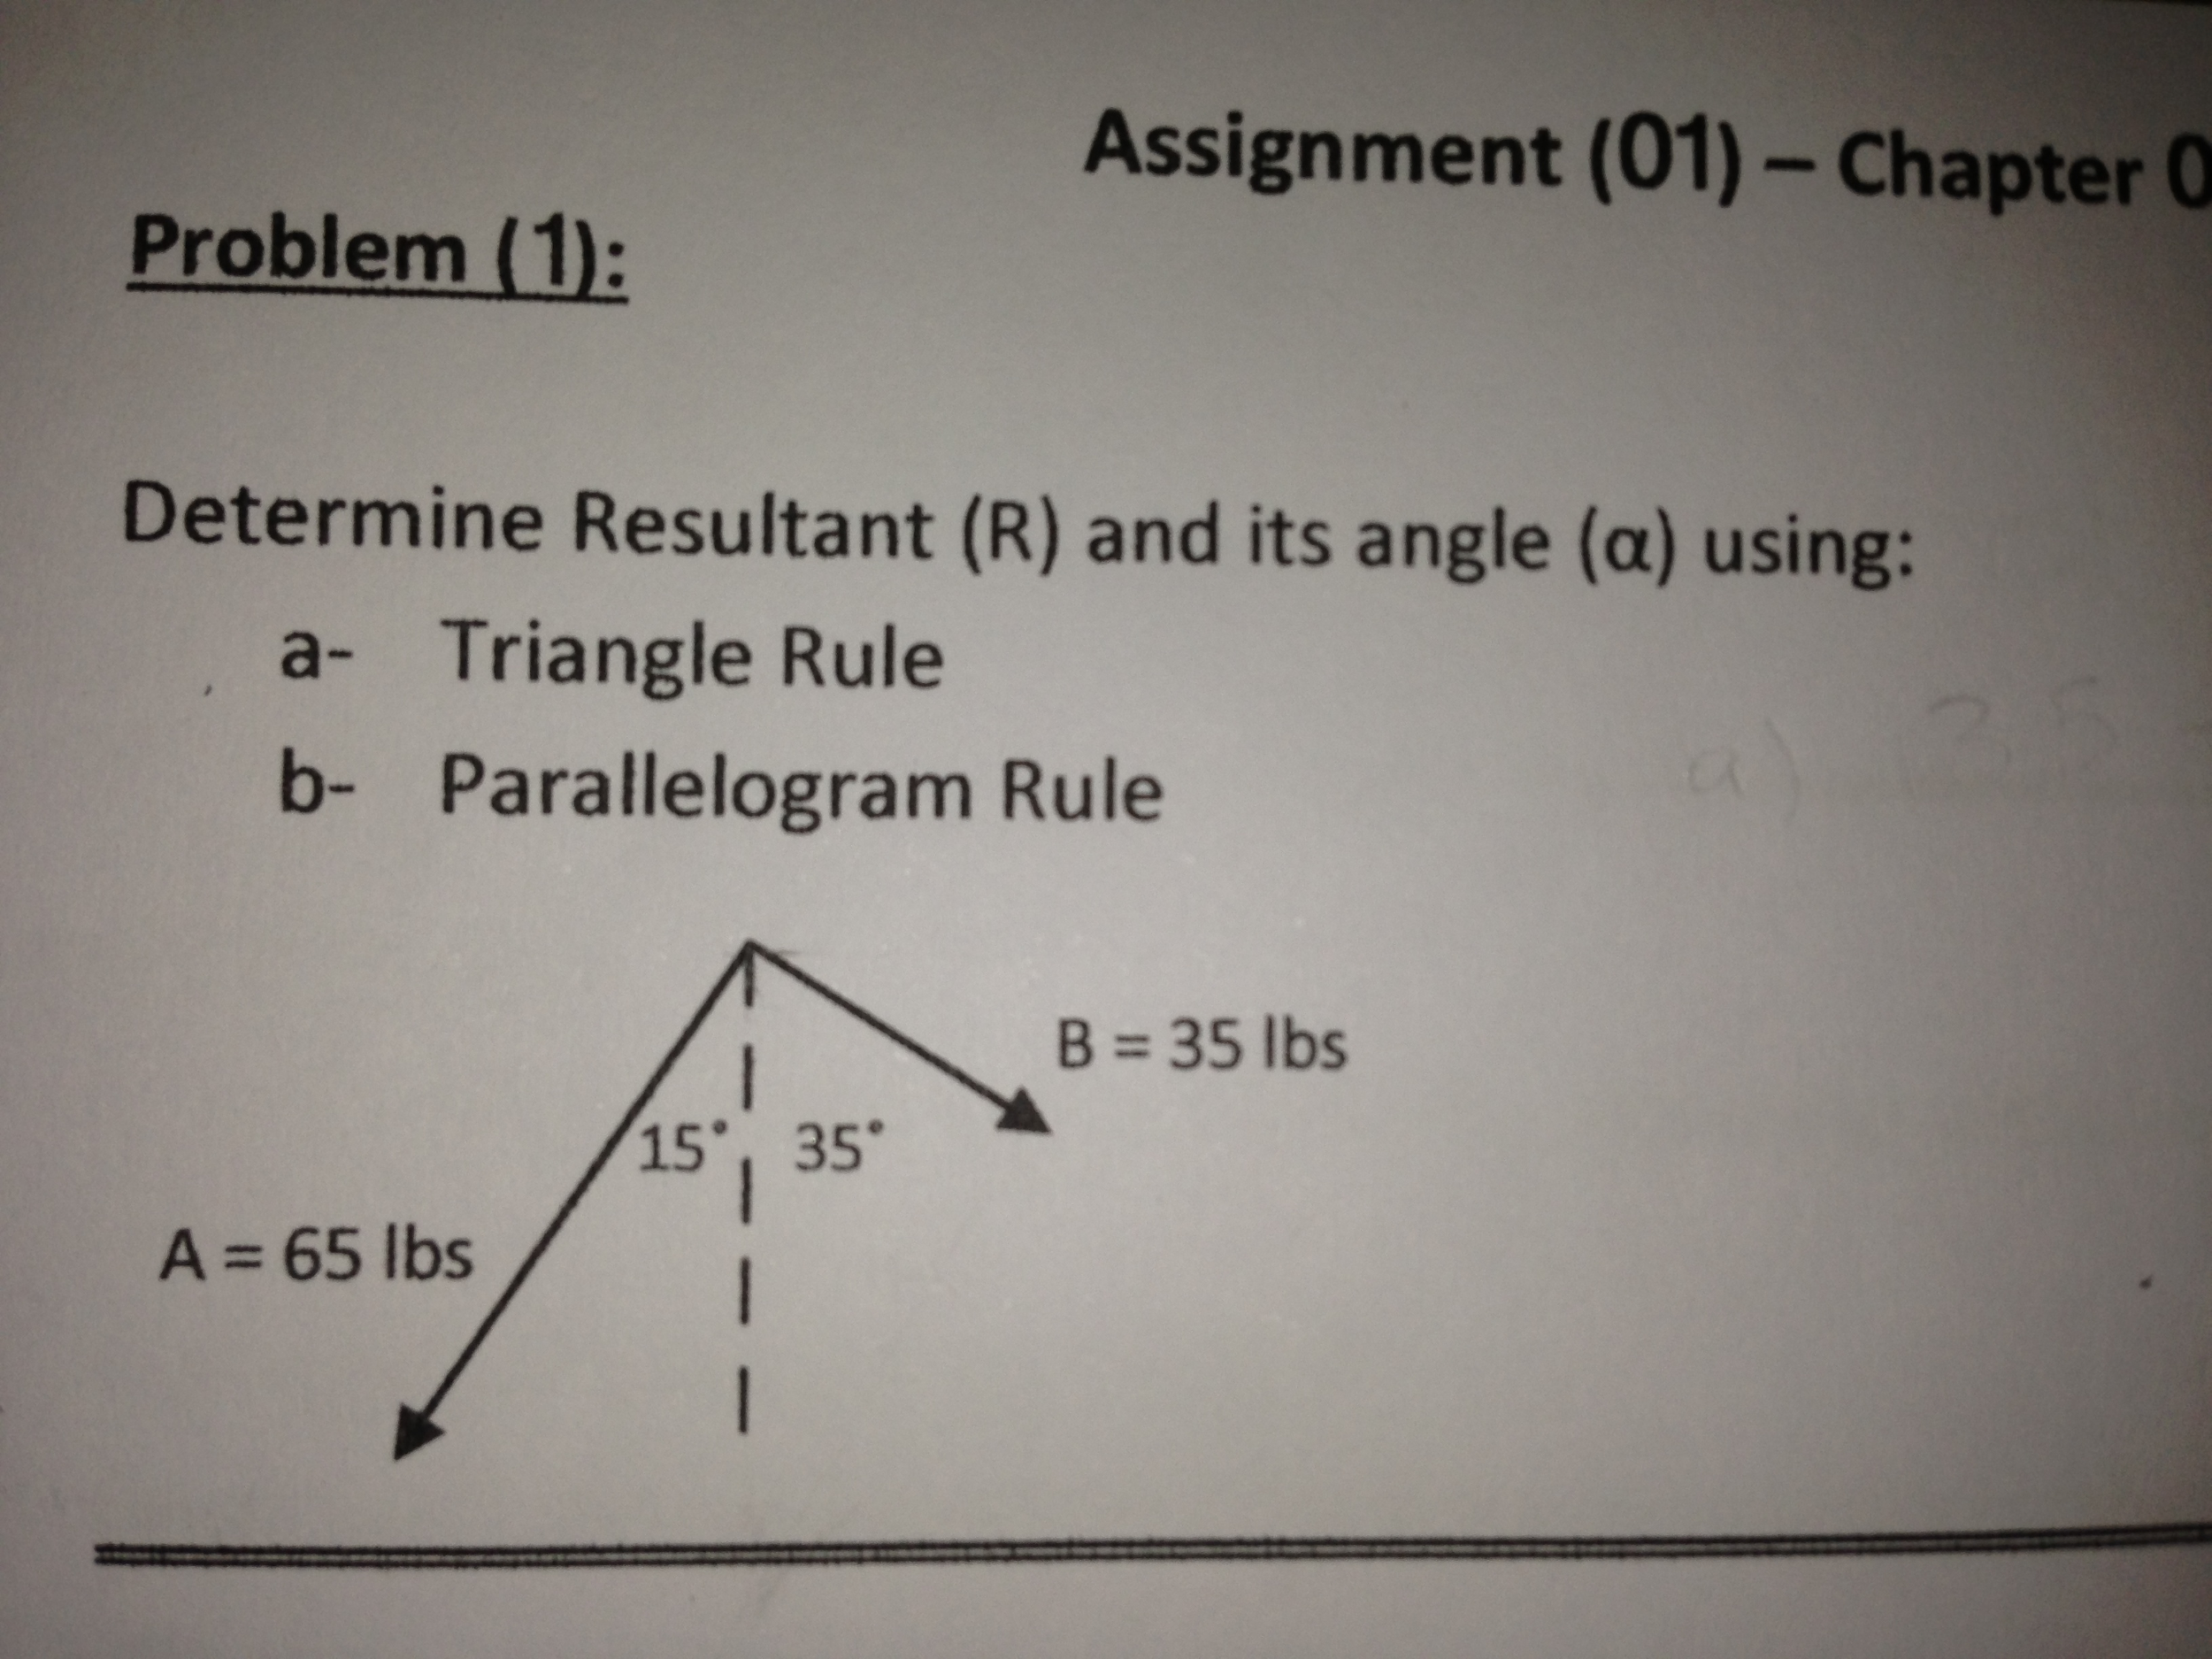 Determine Resultant (R) and its angle (alpha) usin